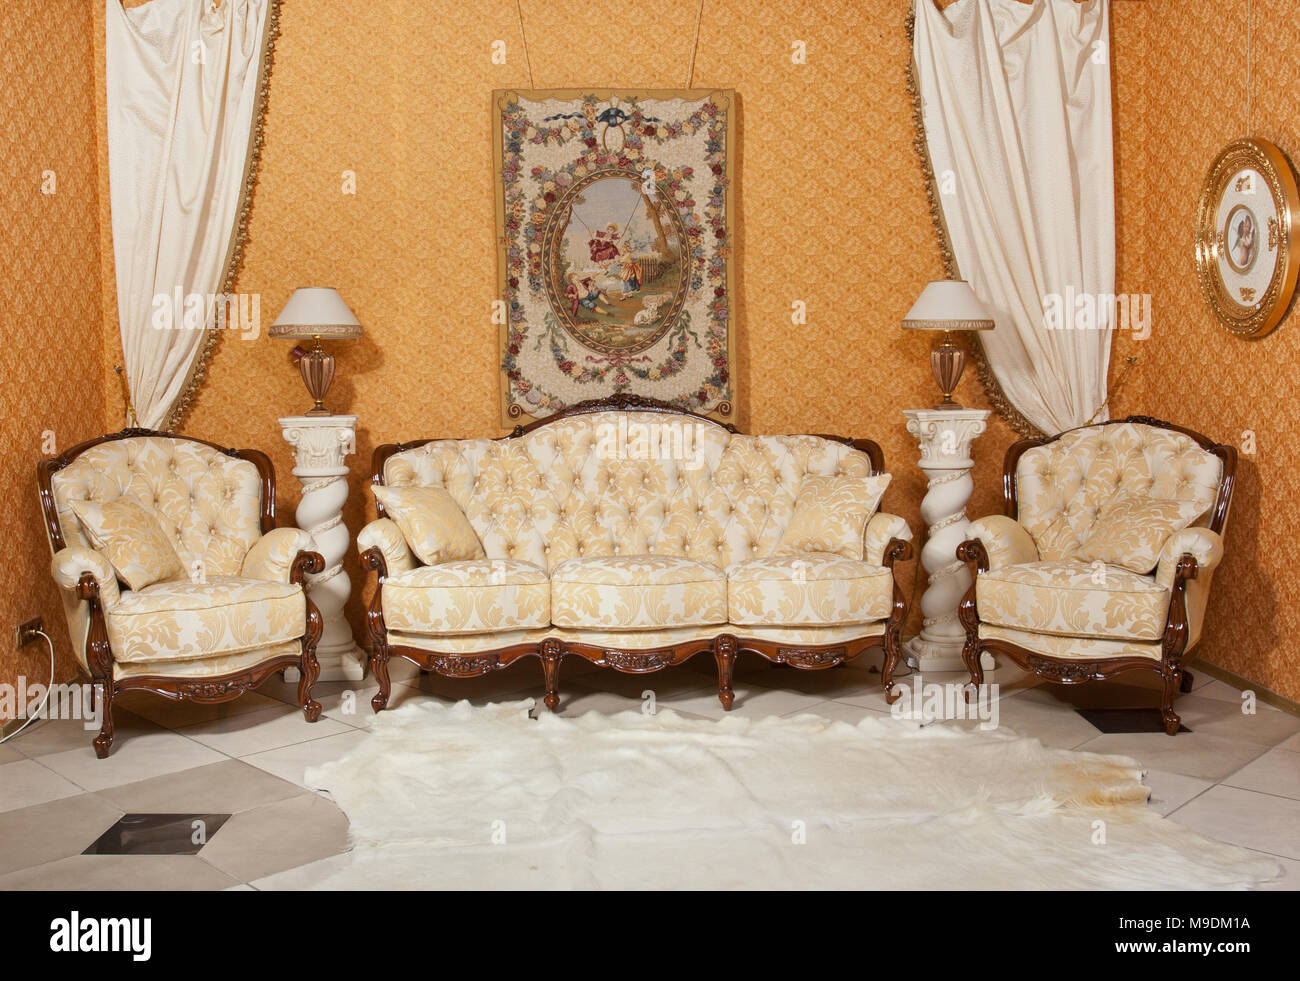 empty interior living room background in warm colors decorated with ...